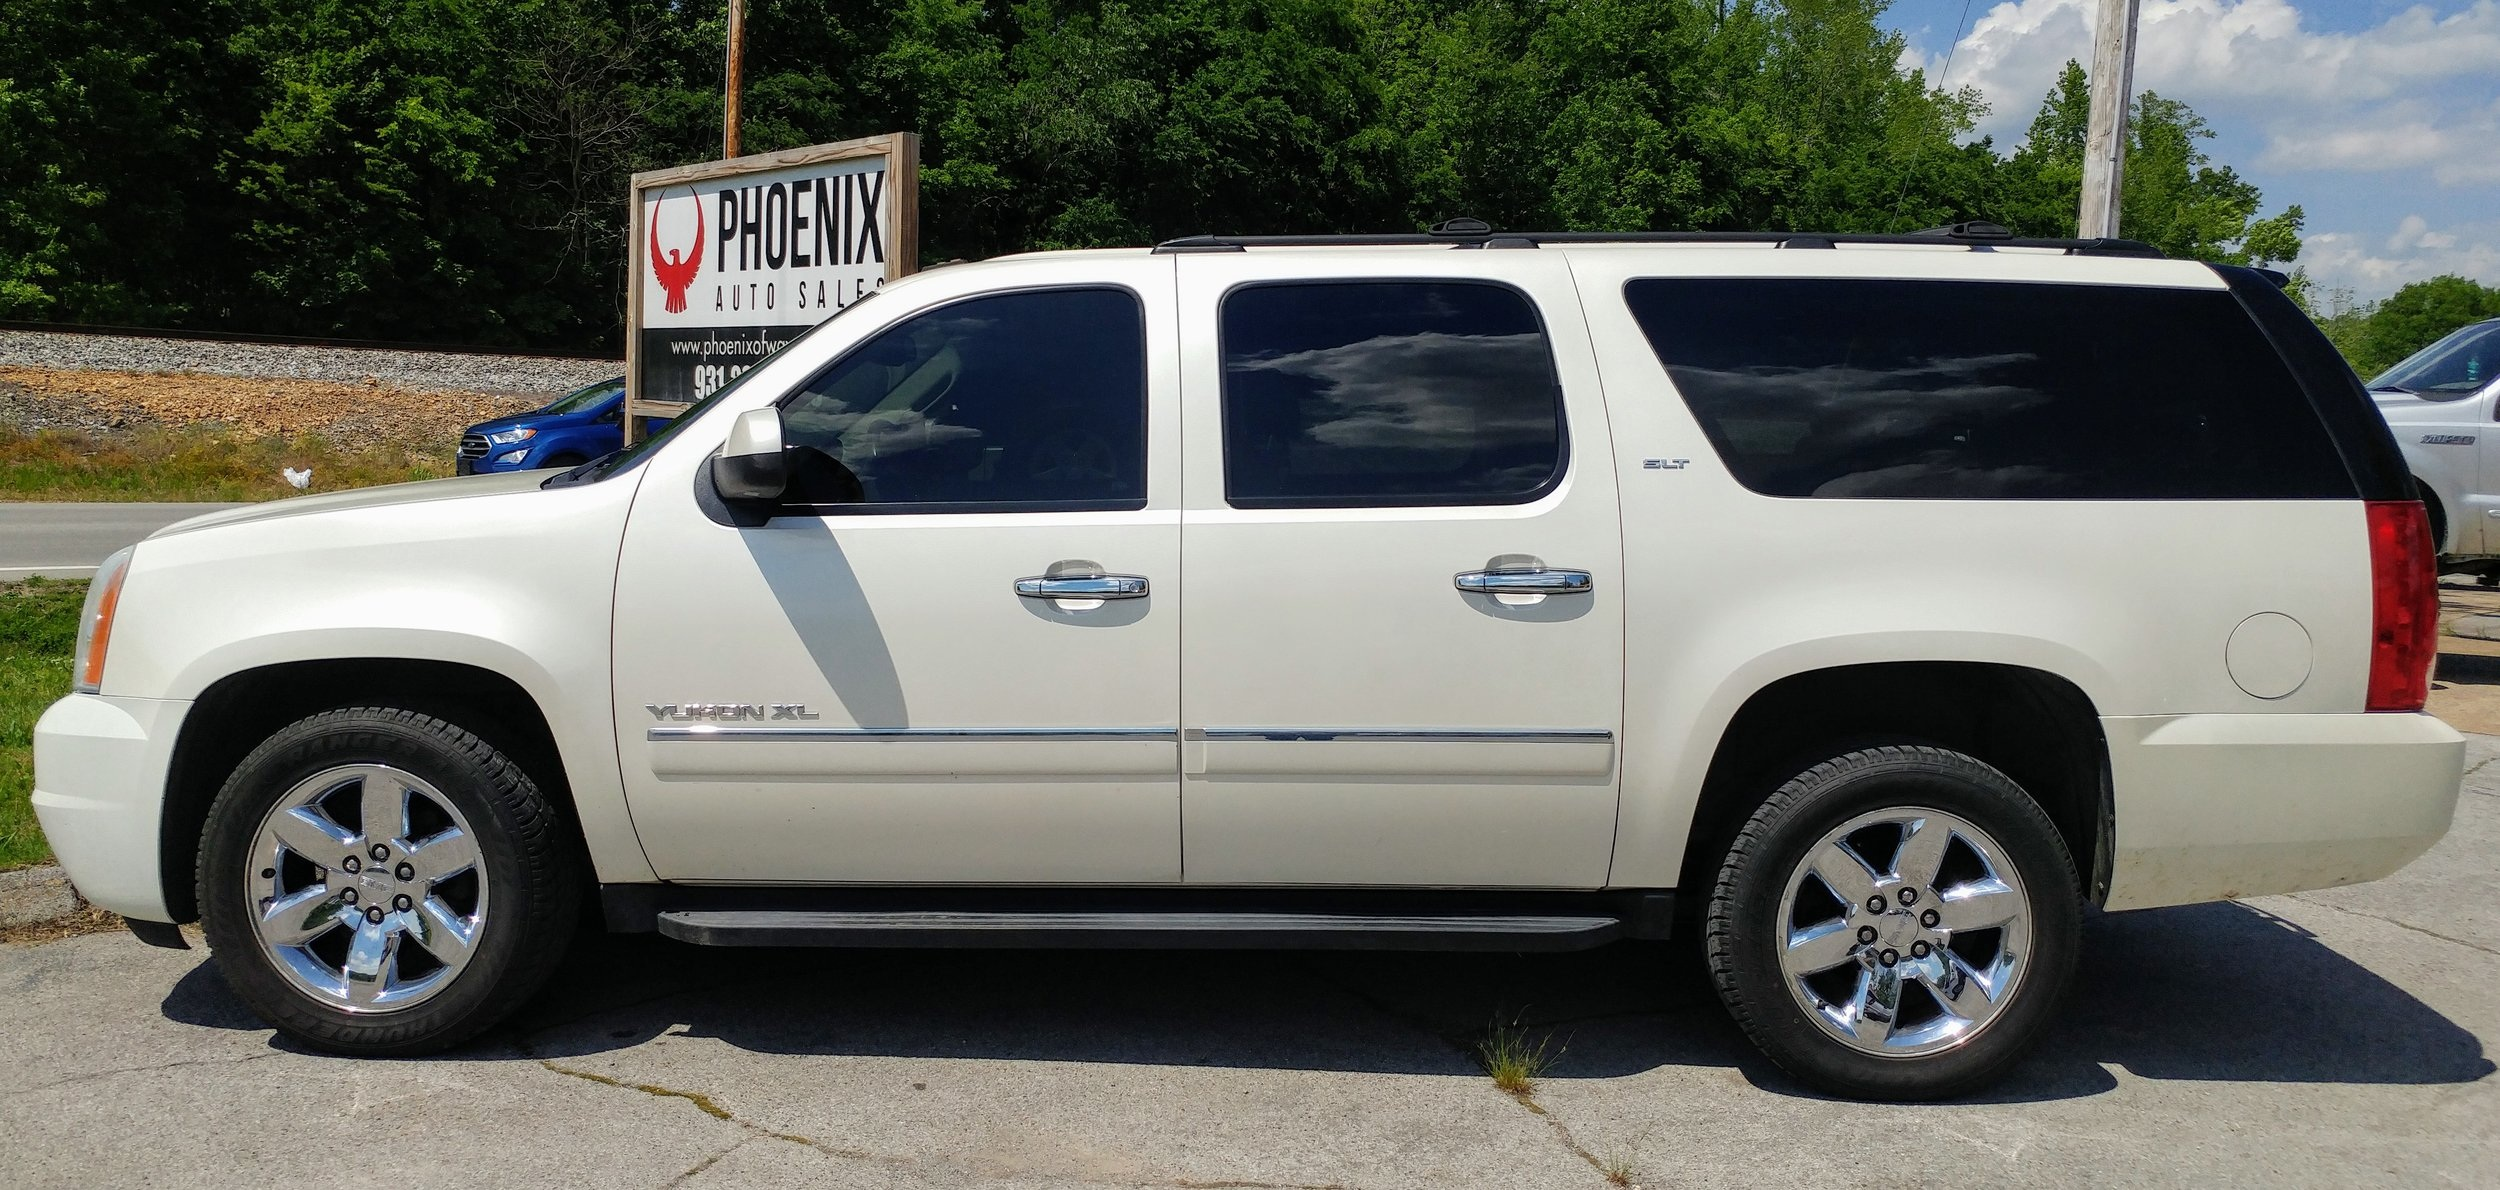 2010 GMC Yukon XL SLT - 230K miles - leather - loaded out - Call for pricing